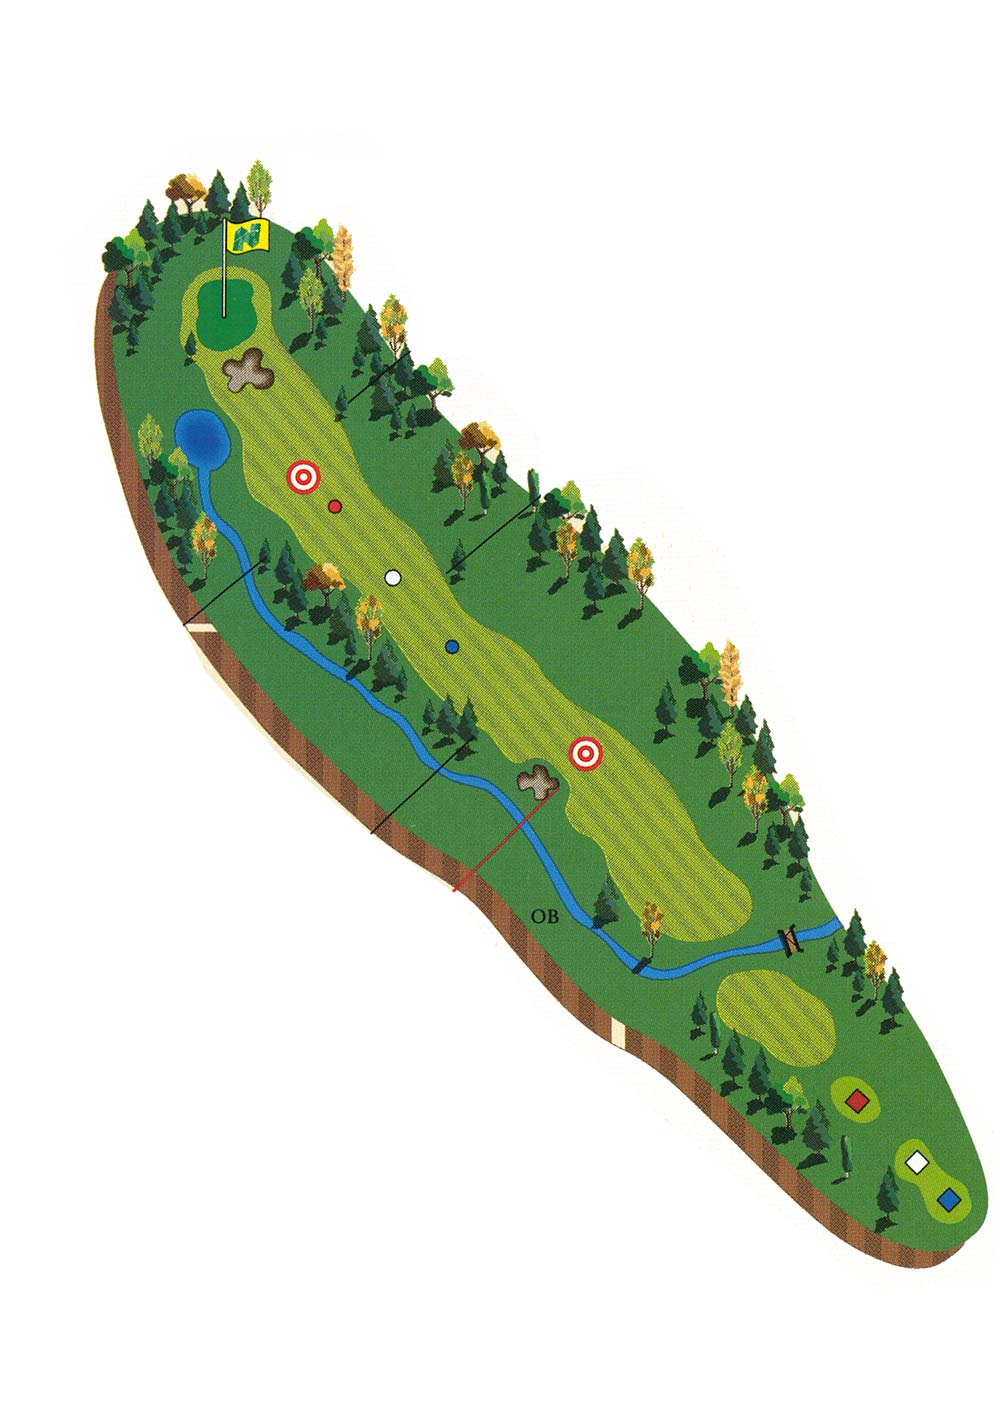 Course Description - Hole 7